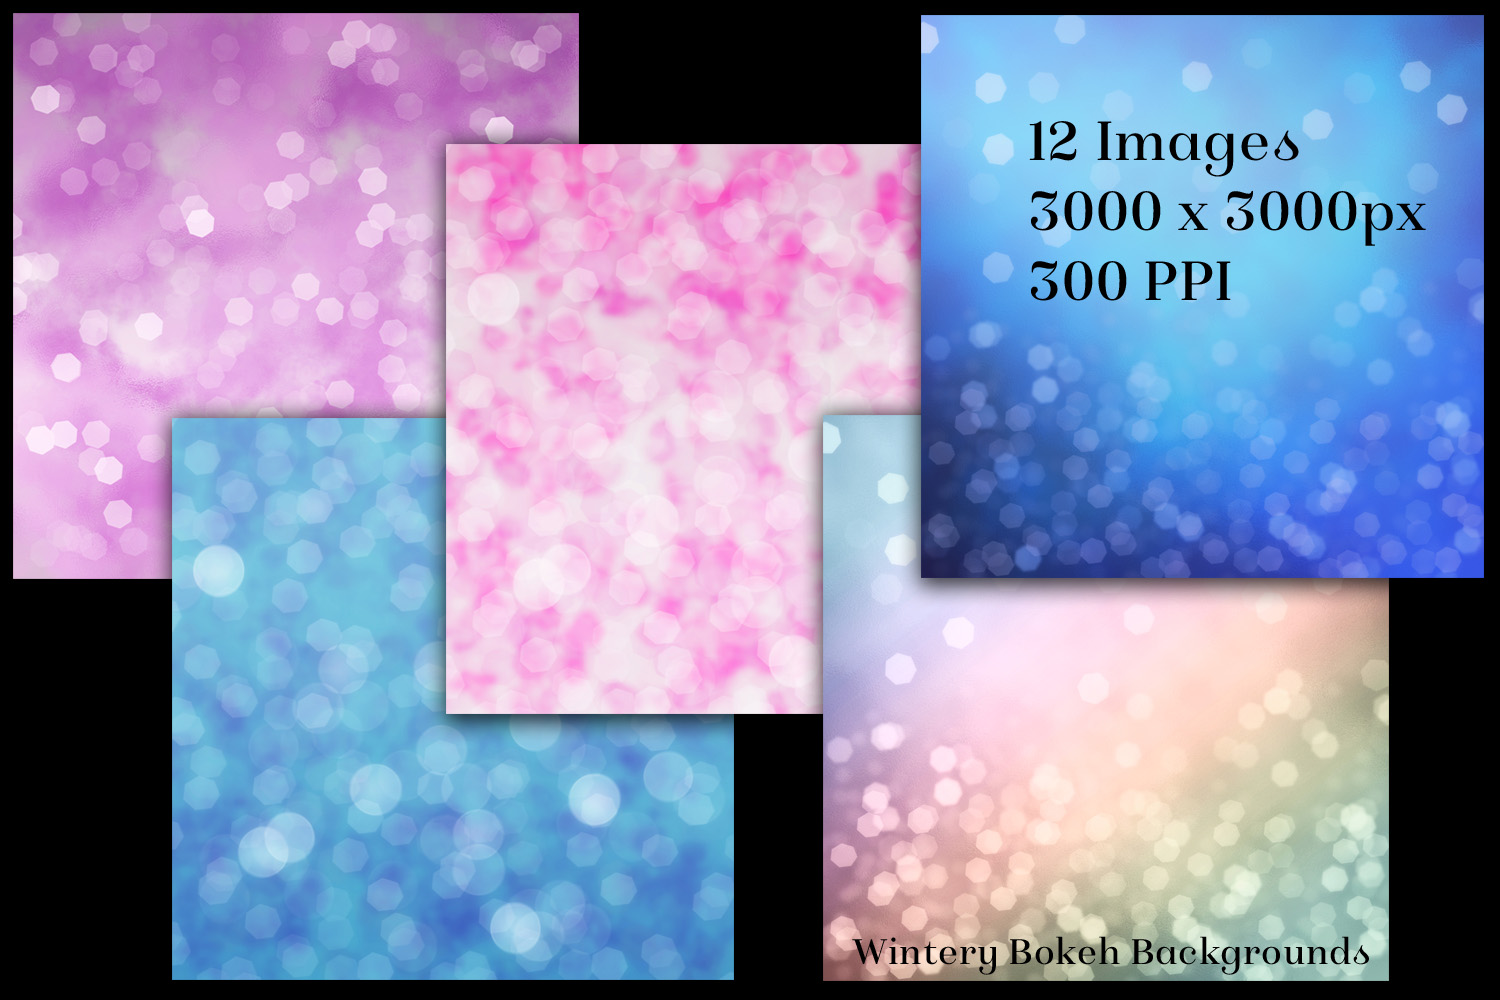 Wintery Bokeh Backgrounds - 12 Image Textures Set example image 2